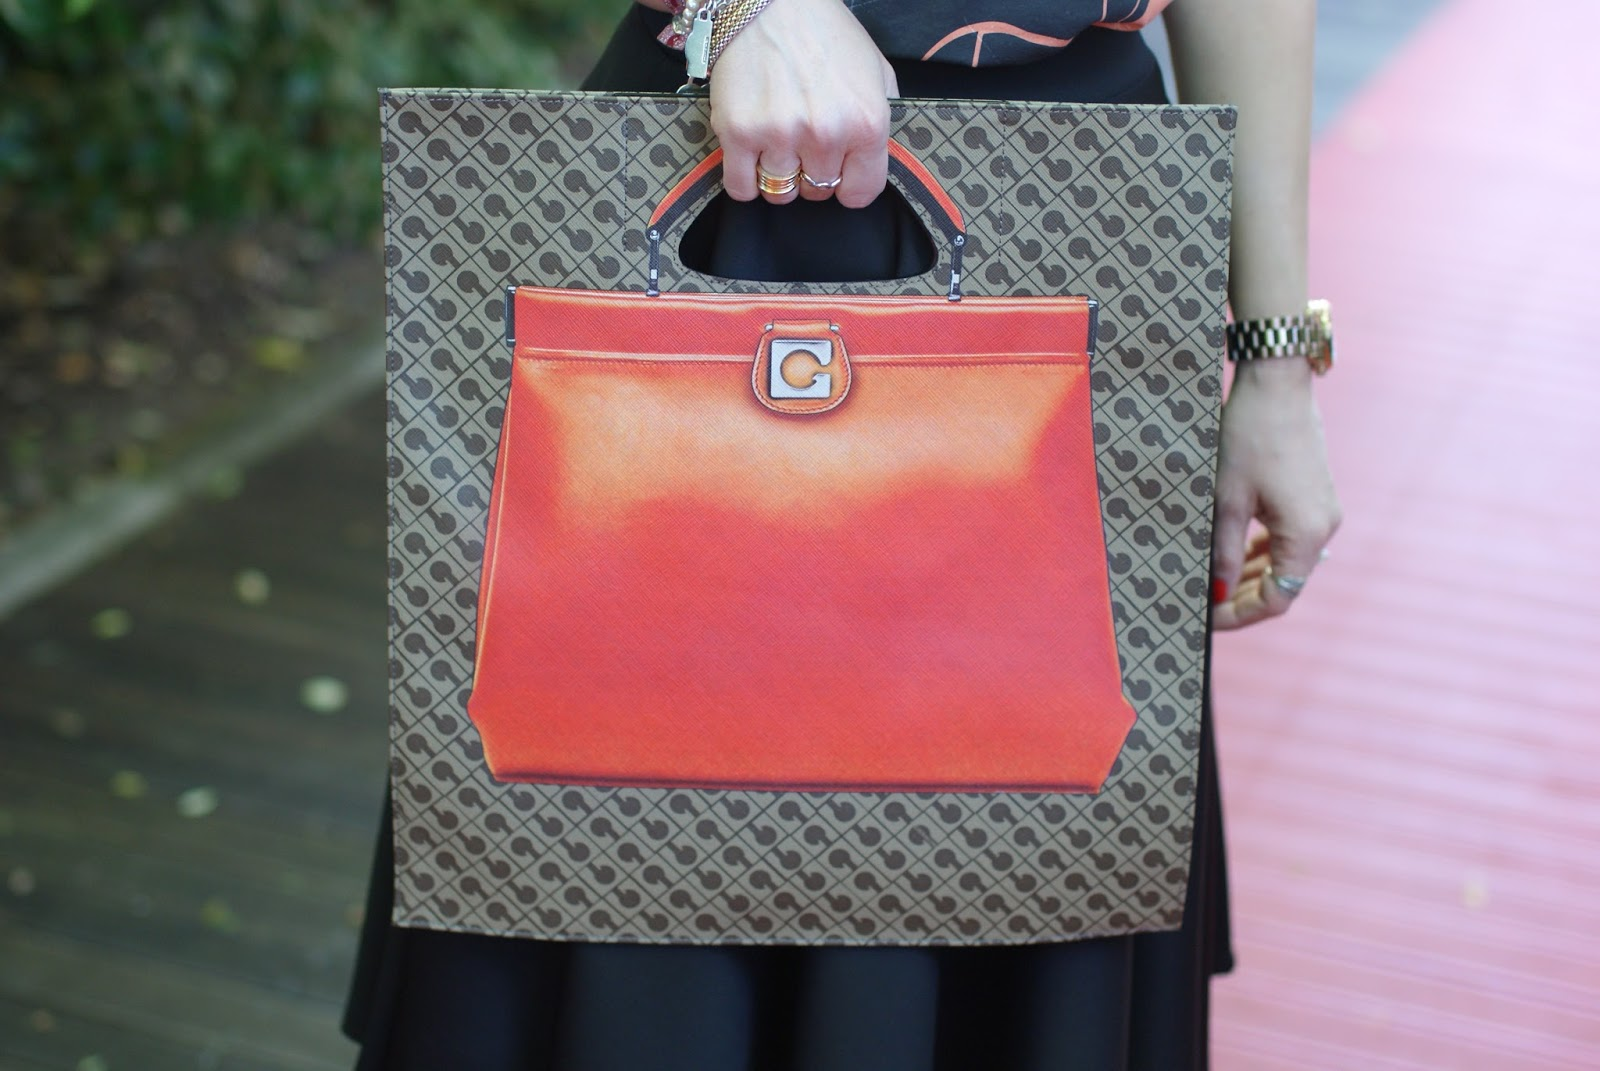 Gherardini bag, Gherardini piattina anniversary 130, Fashion and Cookies fashion blog, fashion blogger